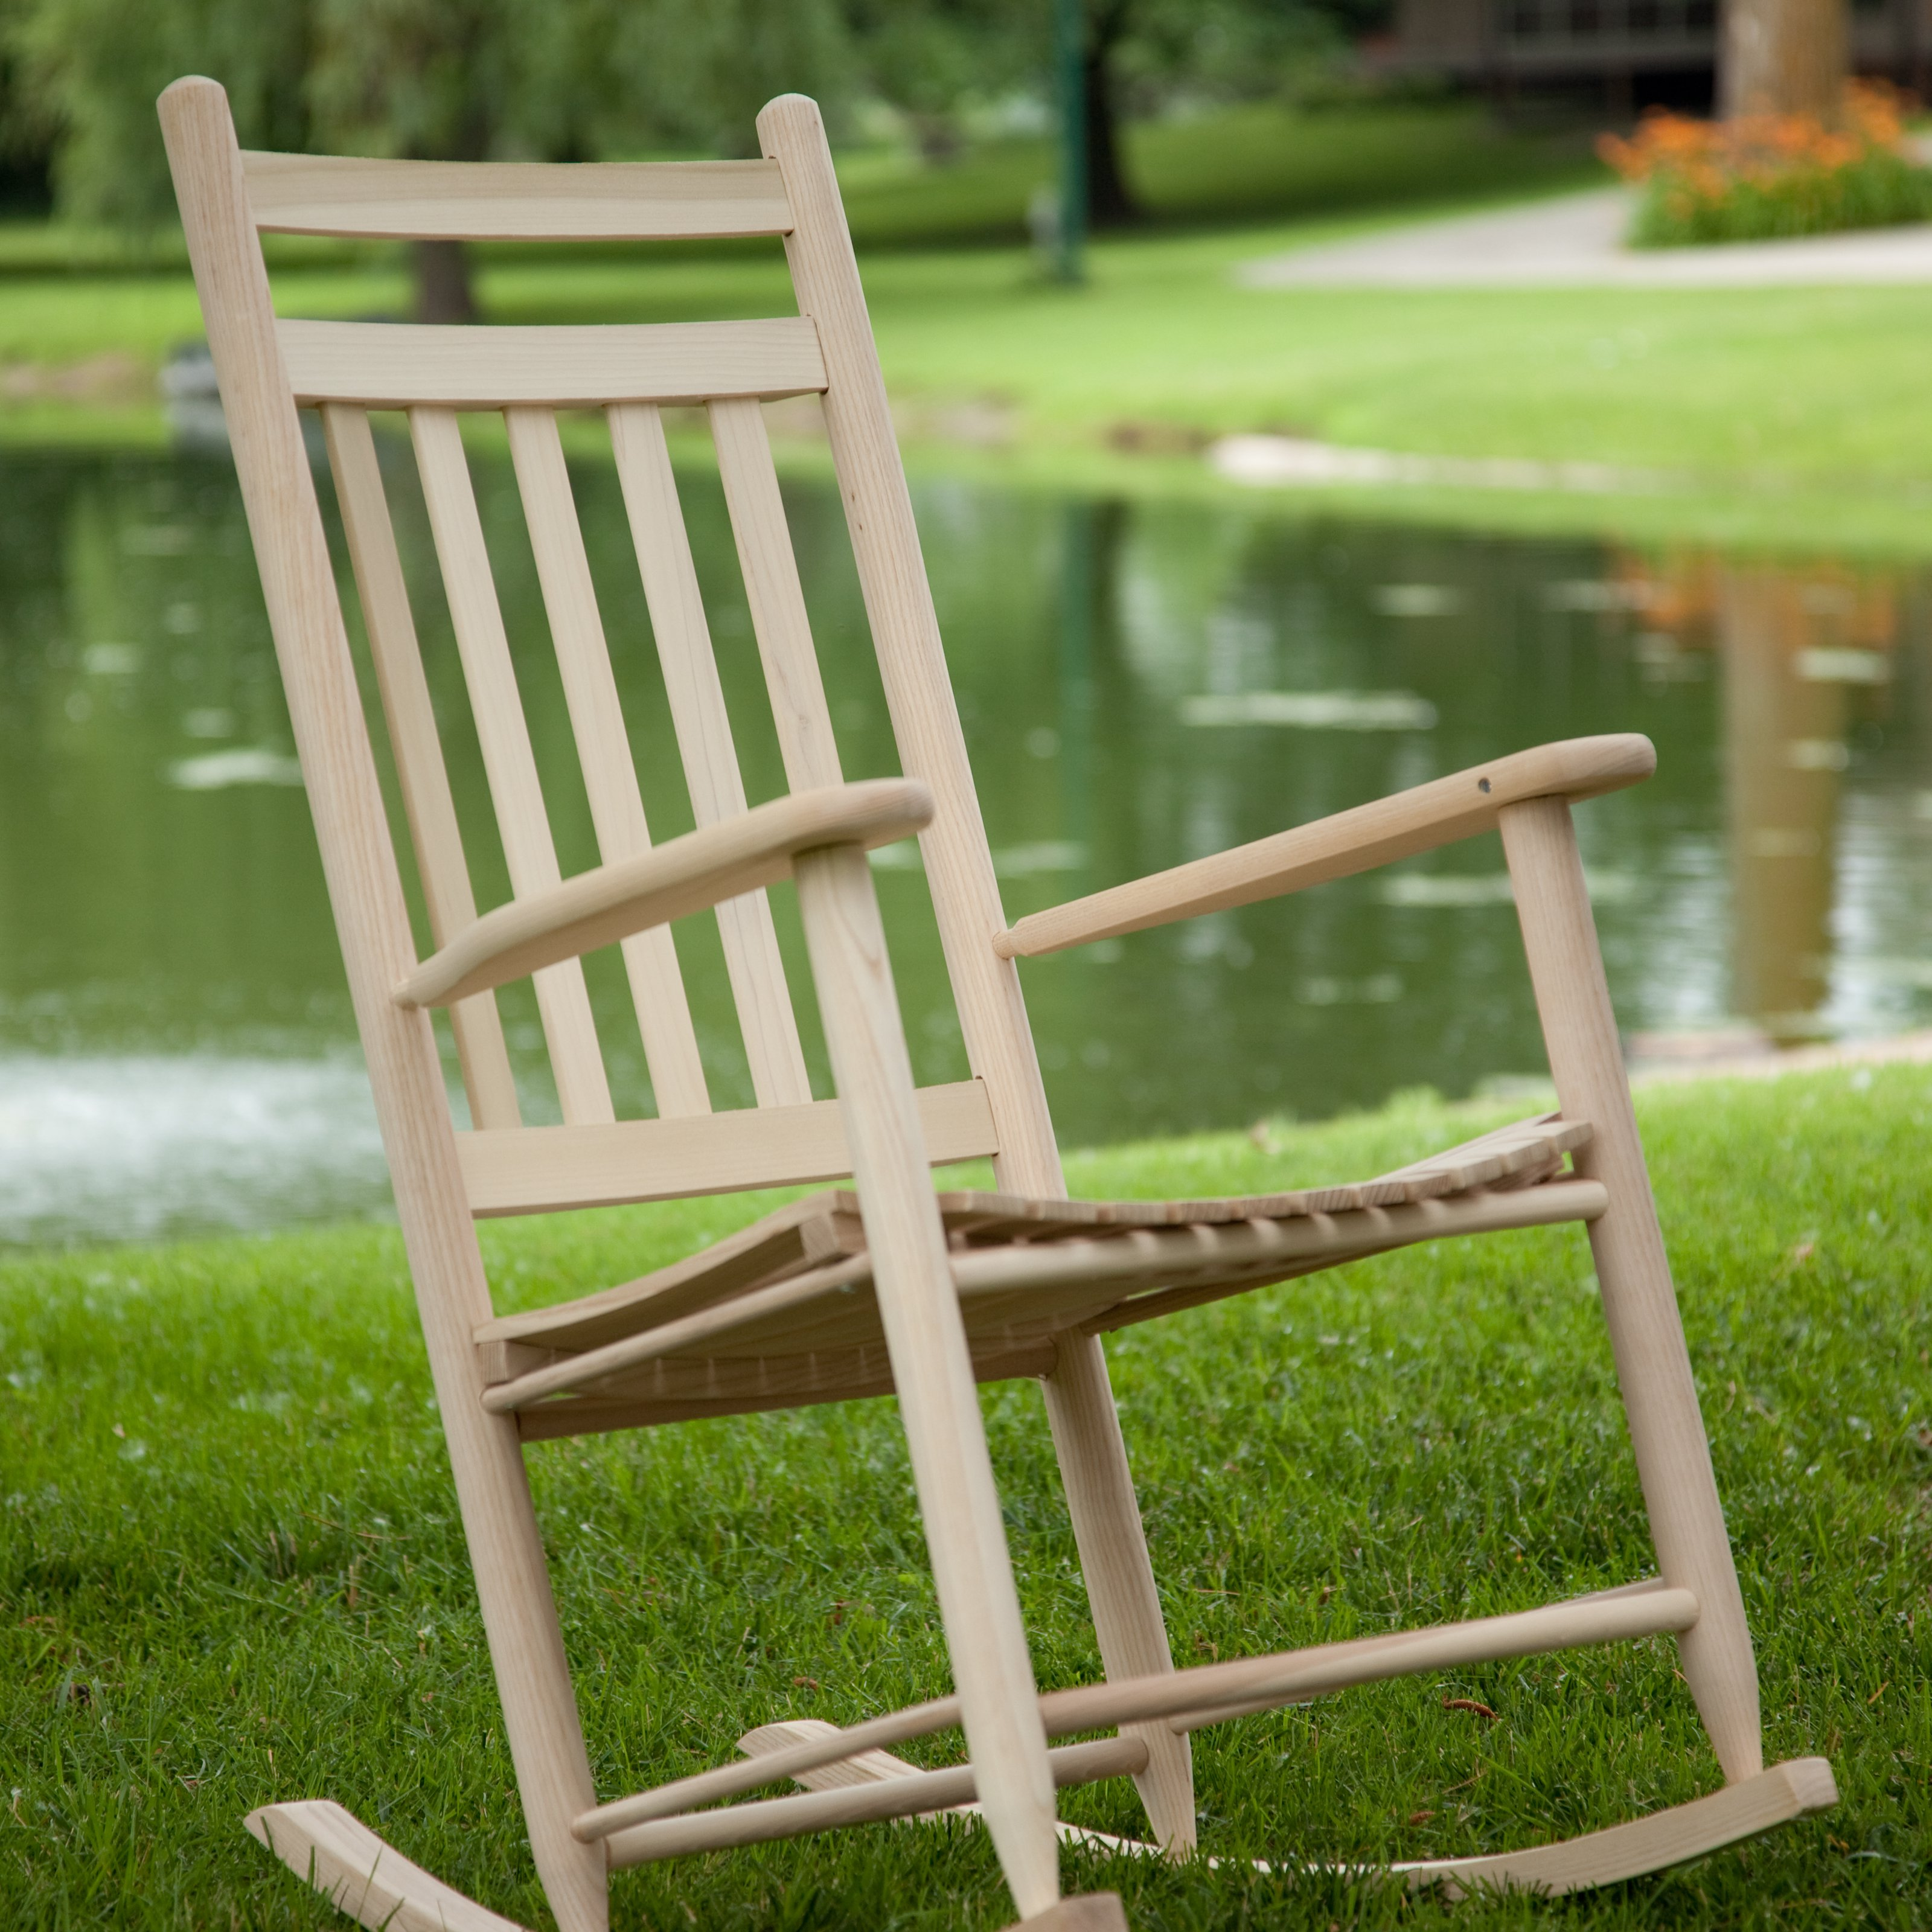 replacement chair spindles uk ergonomic parts rocking chairs outdoor walmart black